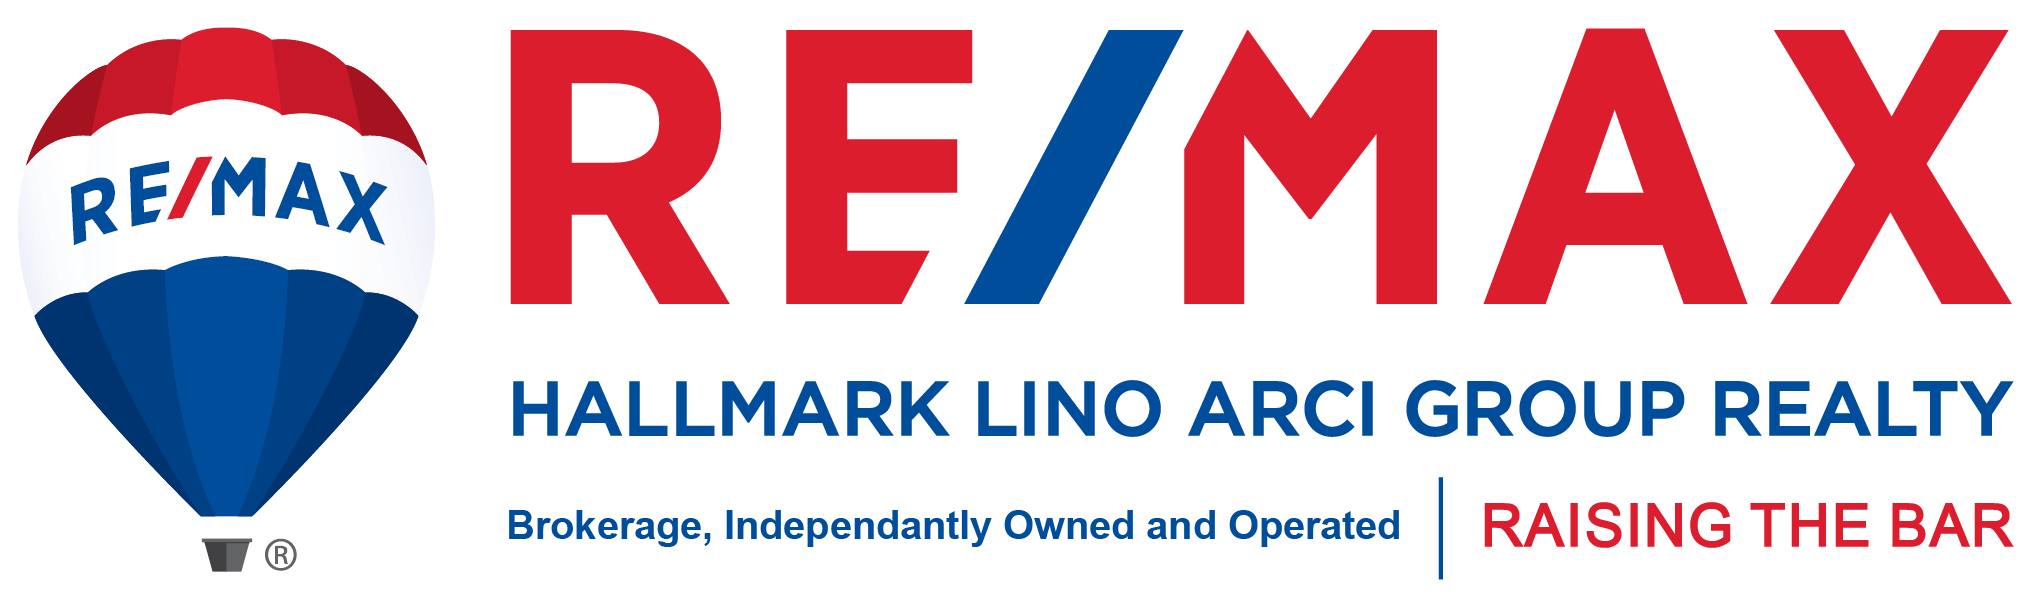 RE/MAX HALLMARK LINO ARCI GROUP REALTY, BROKERAGE